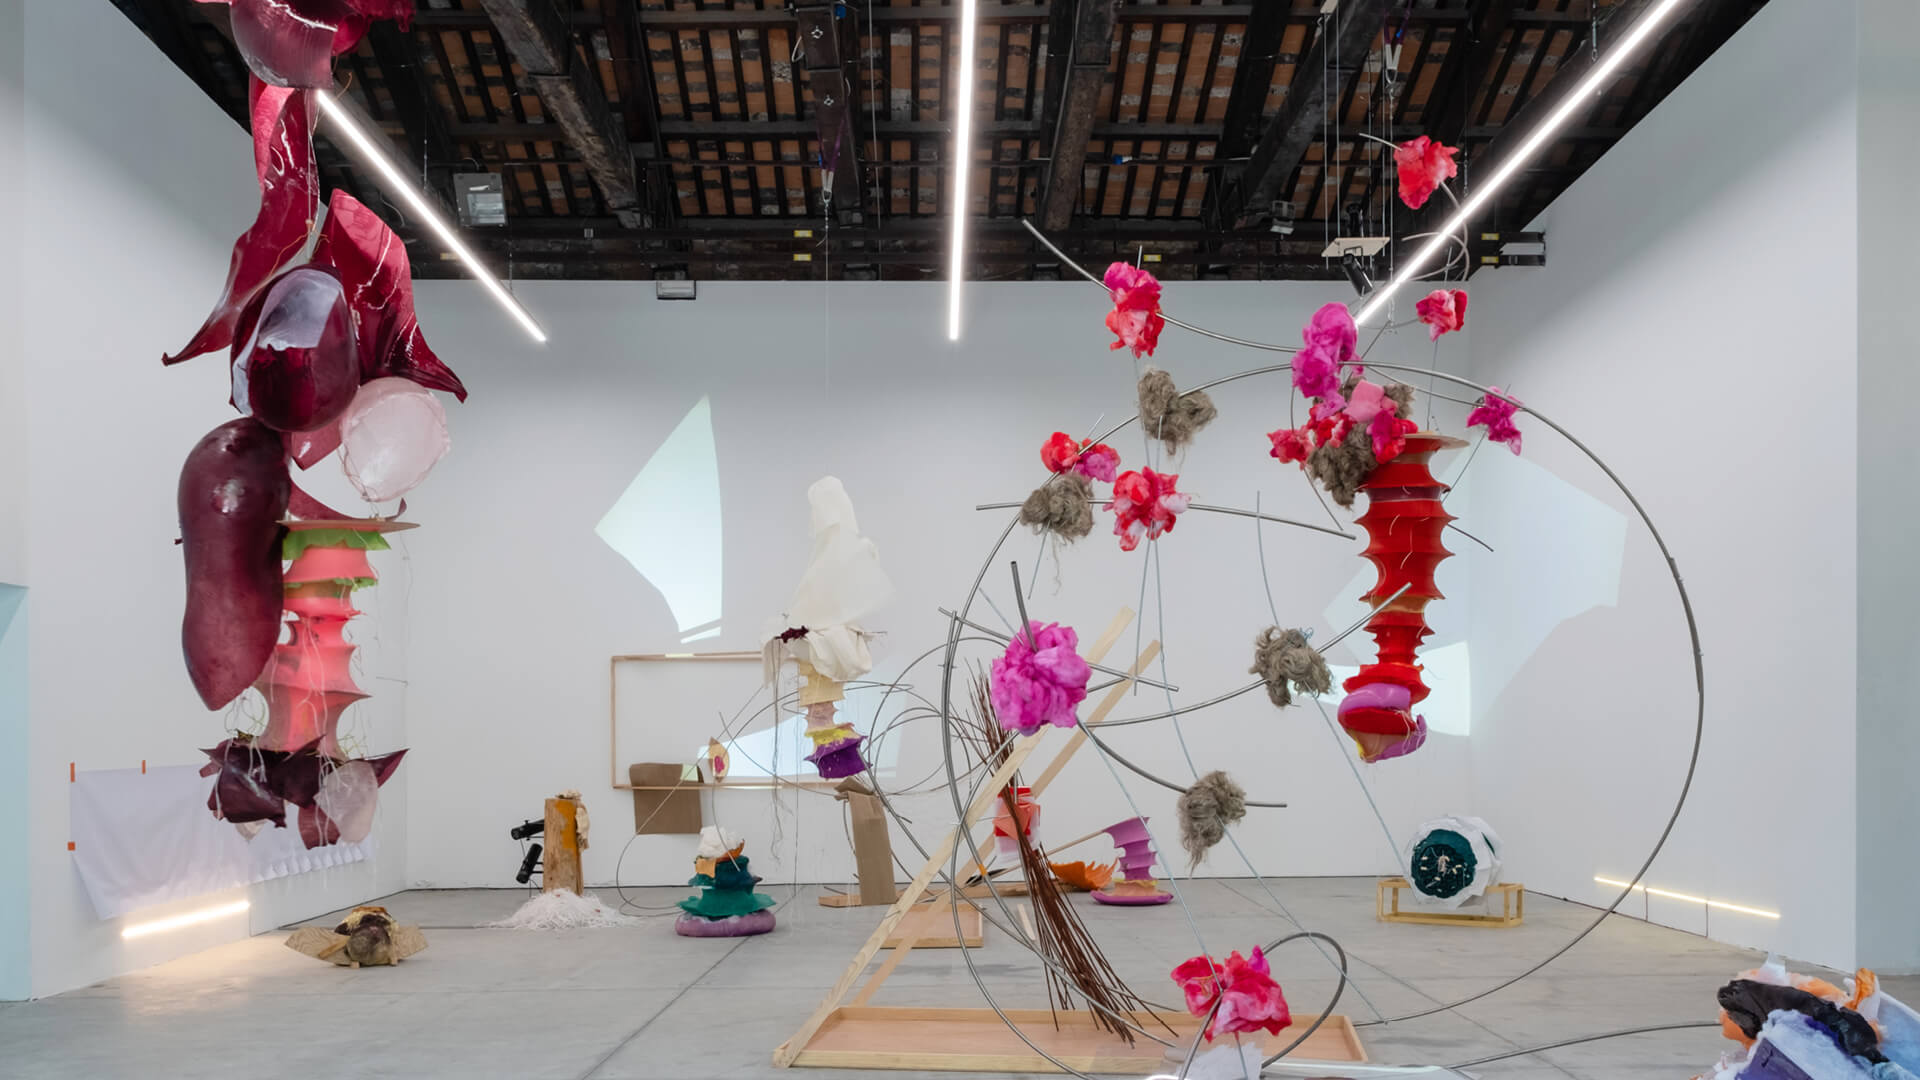 Saules Suns by Daiga Grantina, on display at the 2019 Venice Biennale at the Latvian Pavilion | What Eats Around Itself | Daiga Grantina | STIRworld